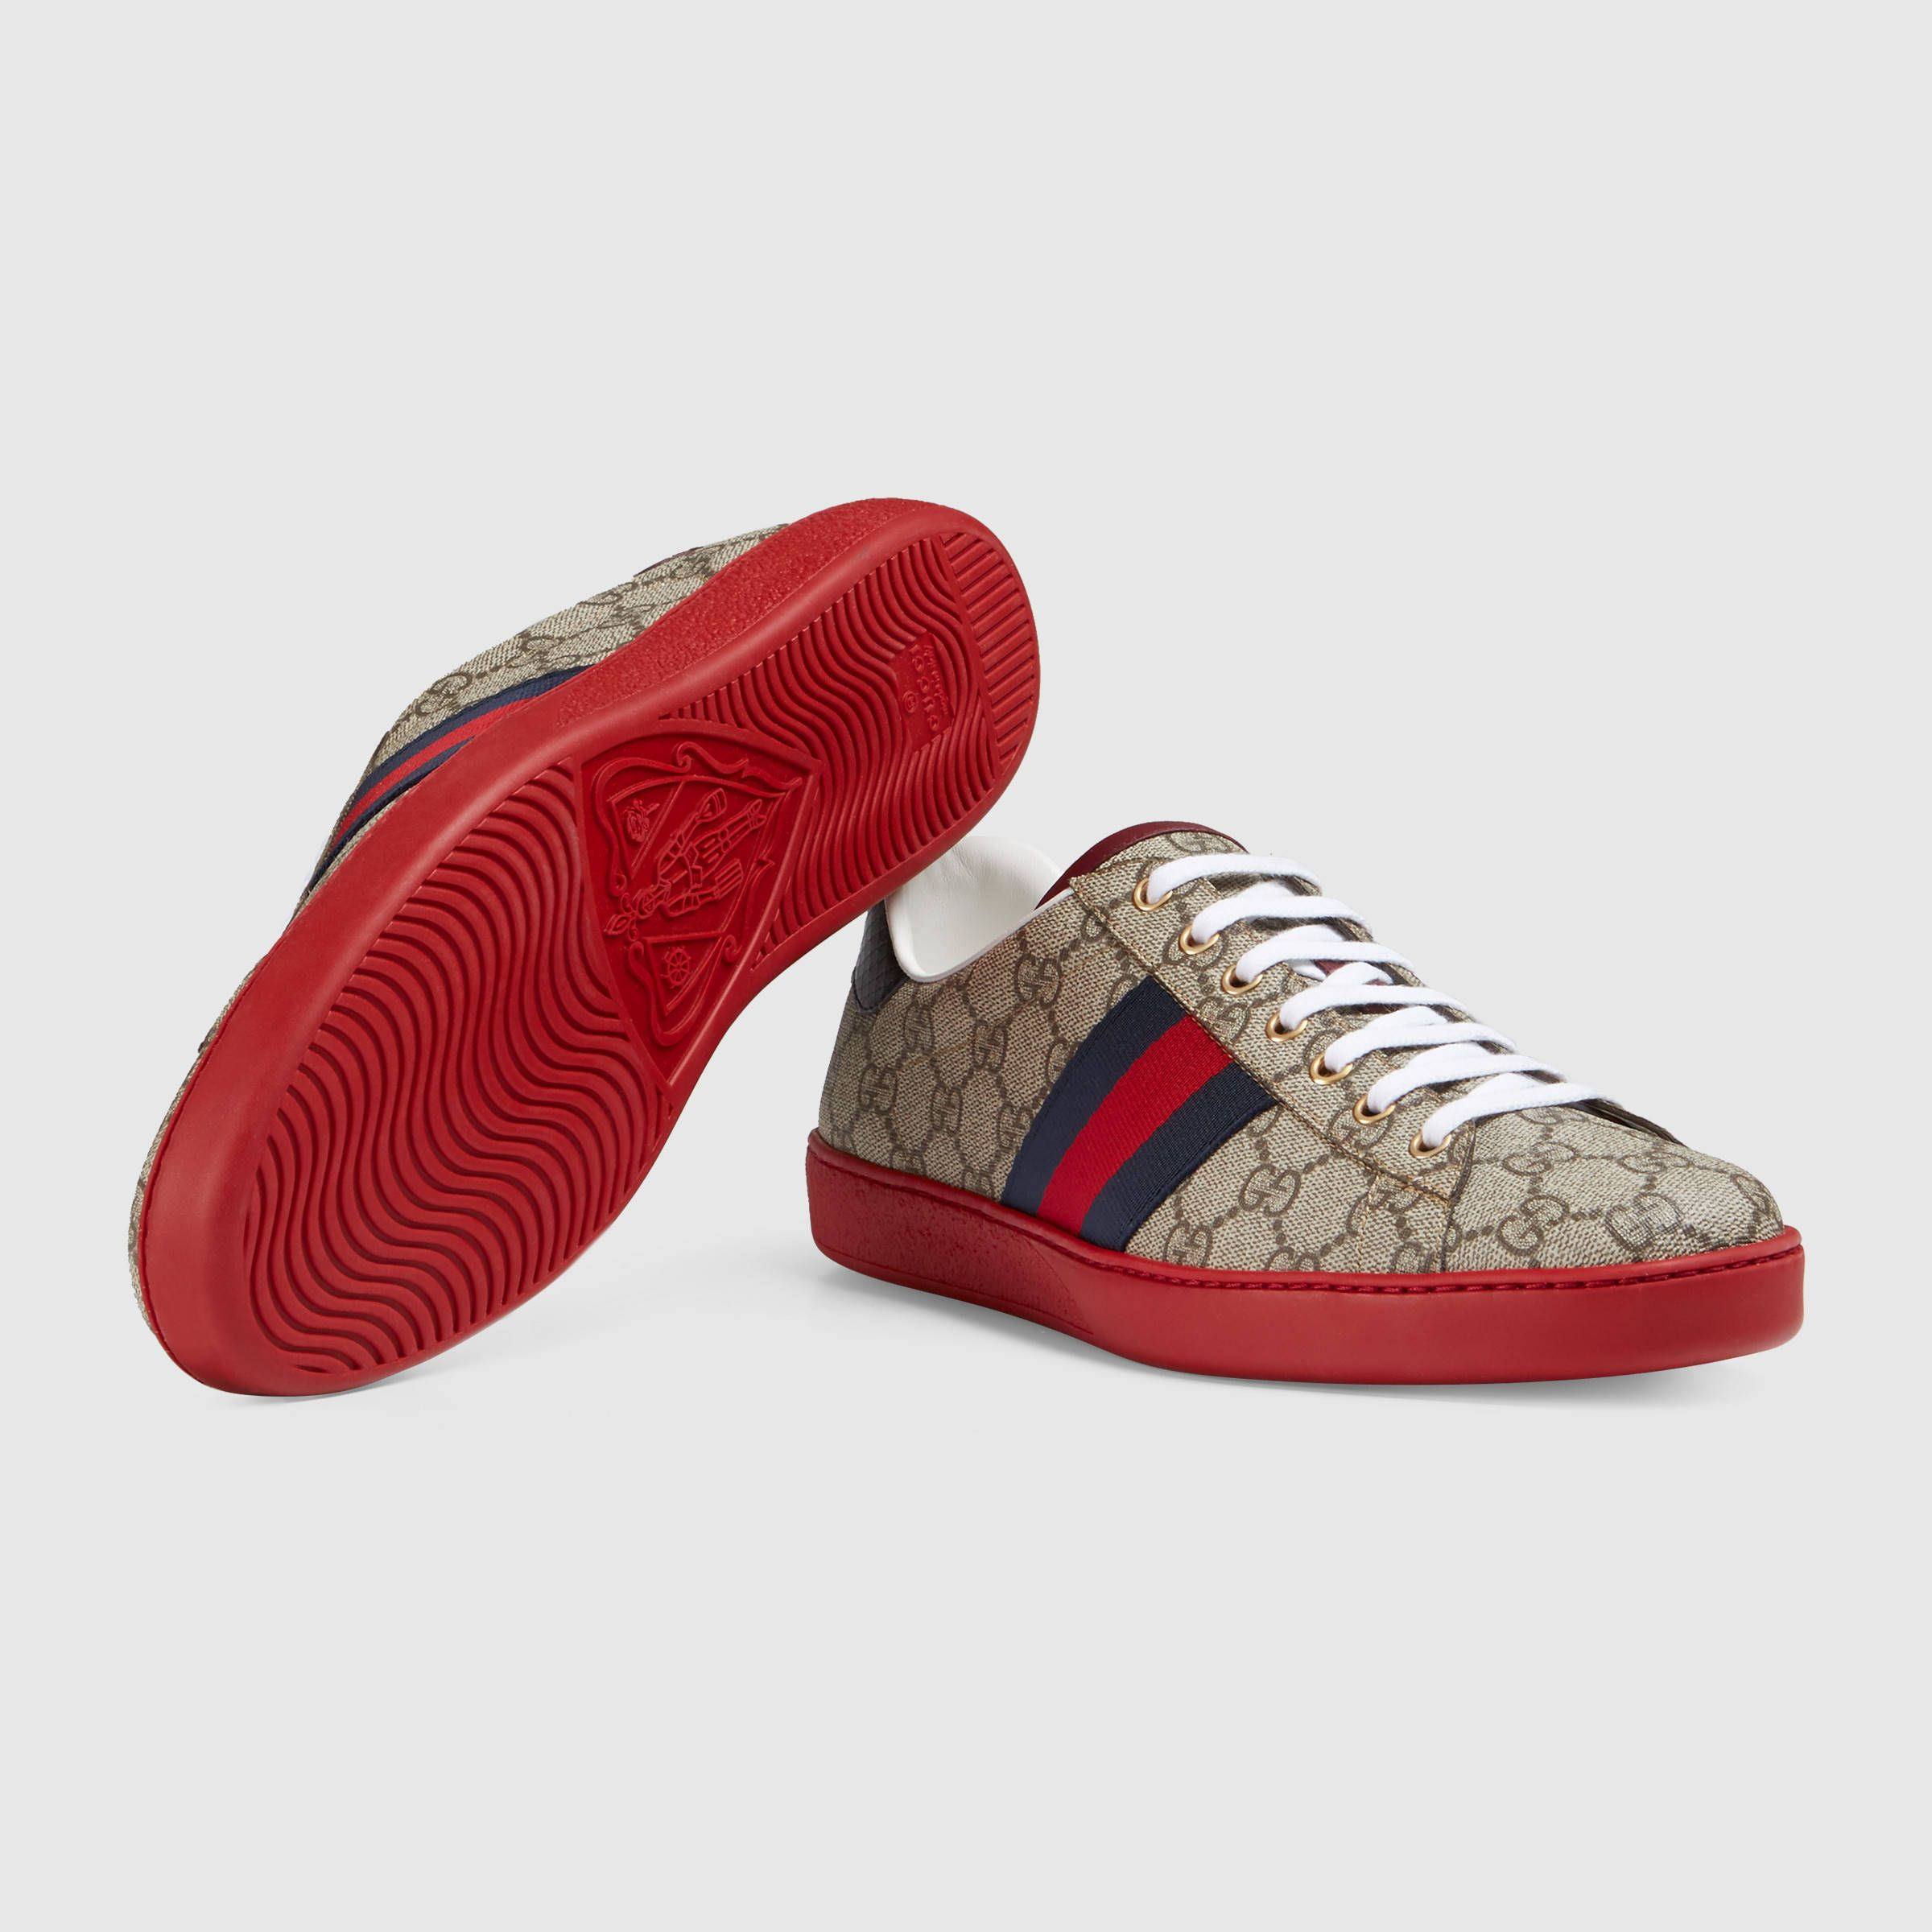 0f3c22e12 Ace GG Supreme sneaker in 2019 | My Style | Sneakers fashion outfits ...